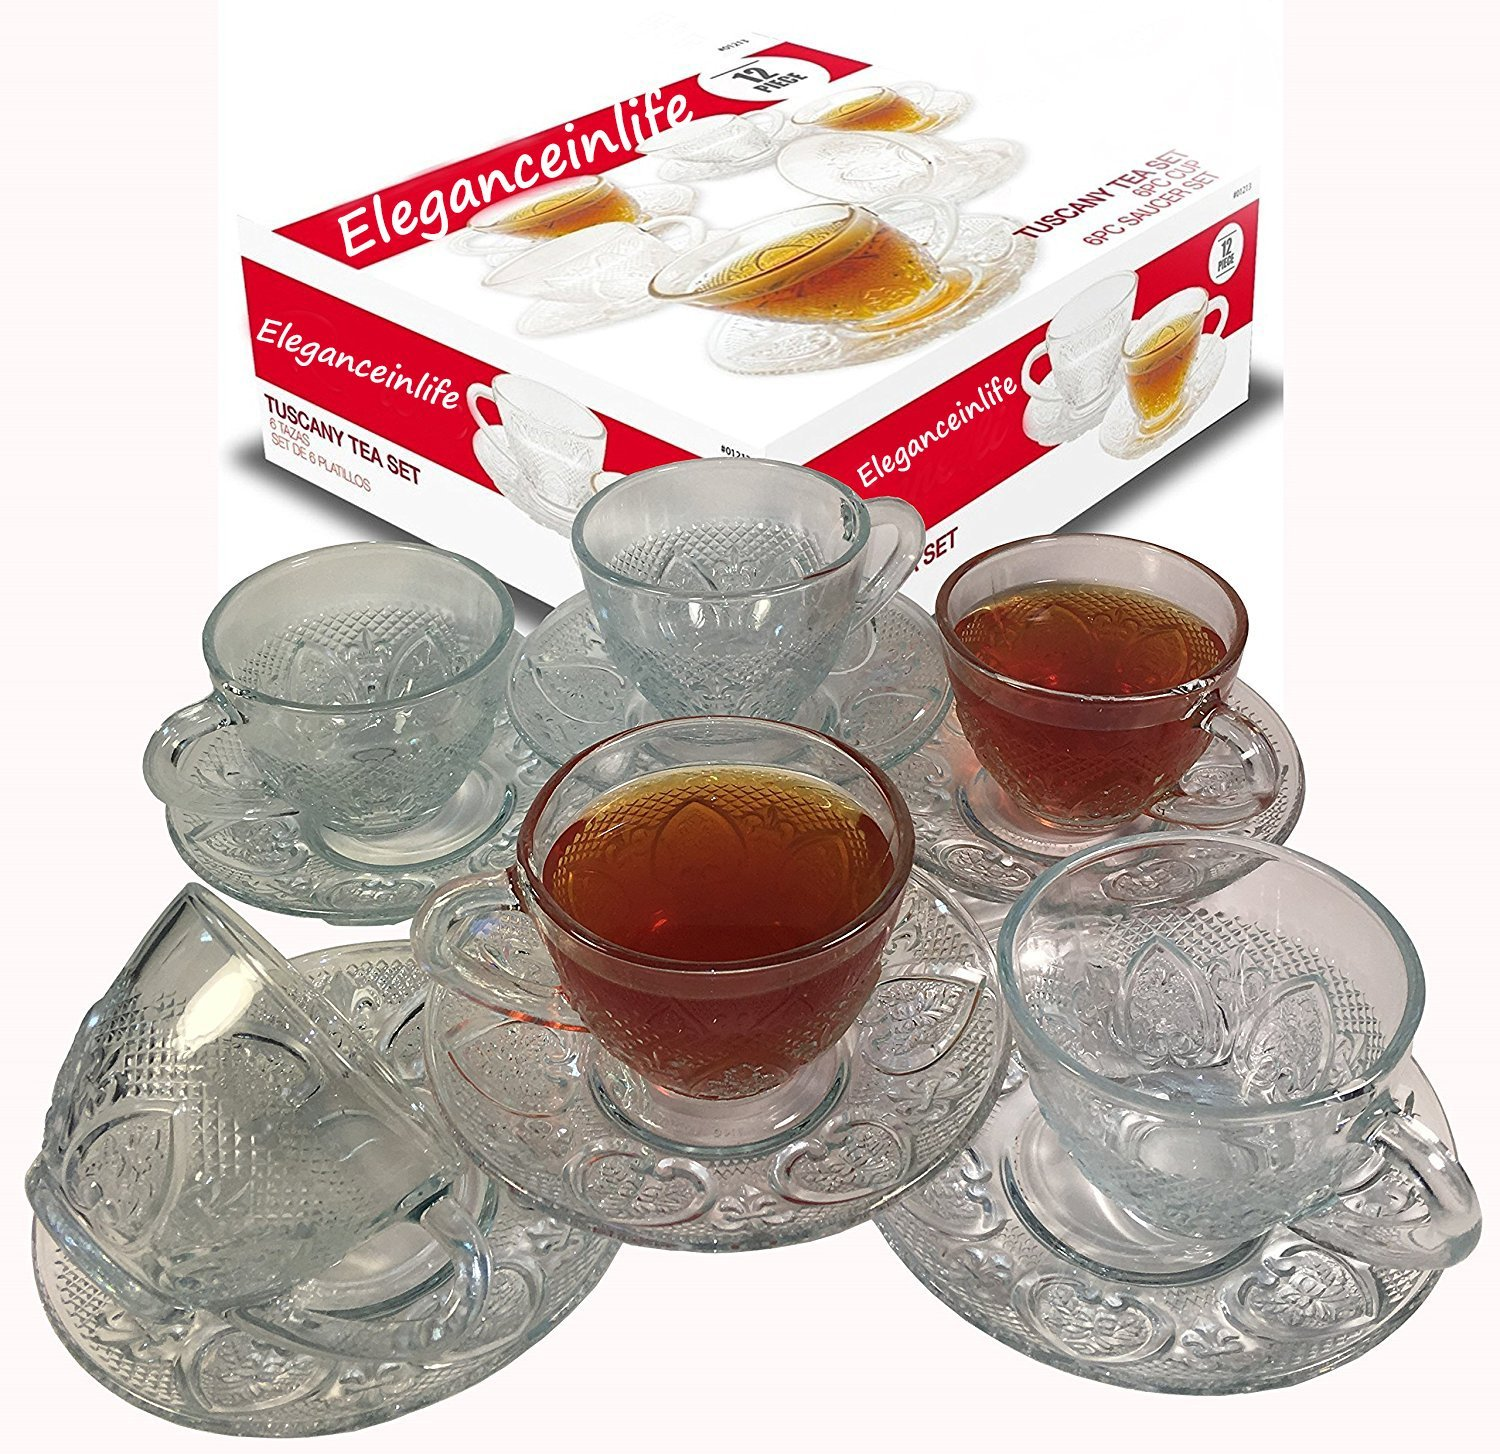 Tea Cup Set 12 Piece Cup & Saucer Set Glass Tea Party Microwave Safe Coffee or Espresso